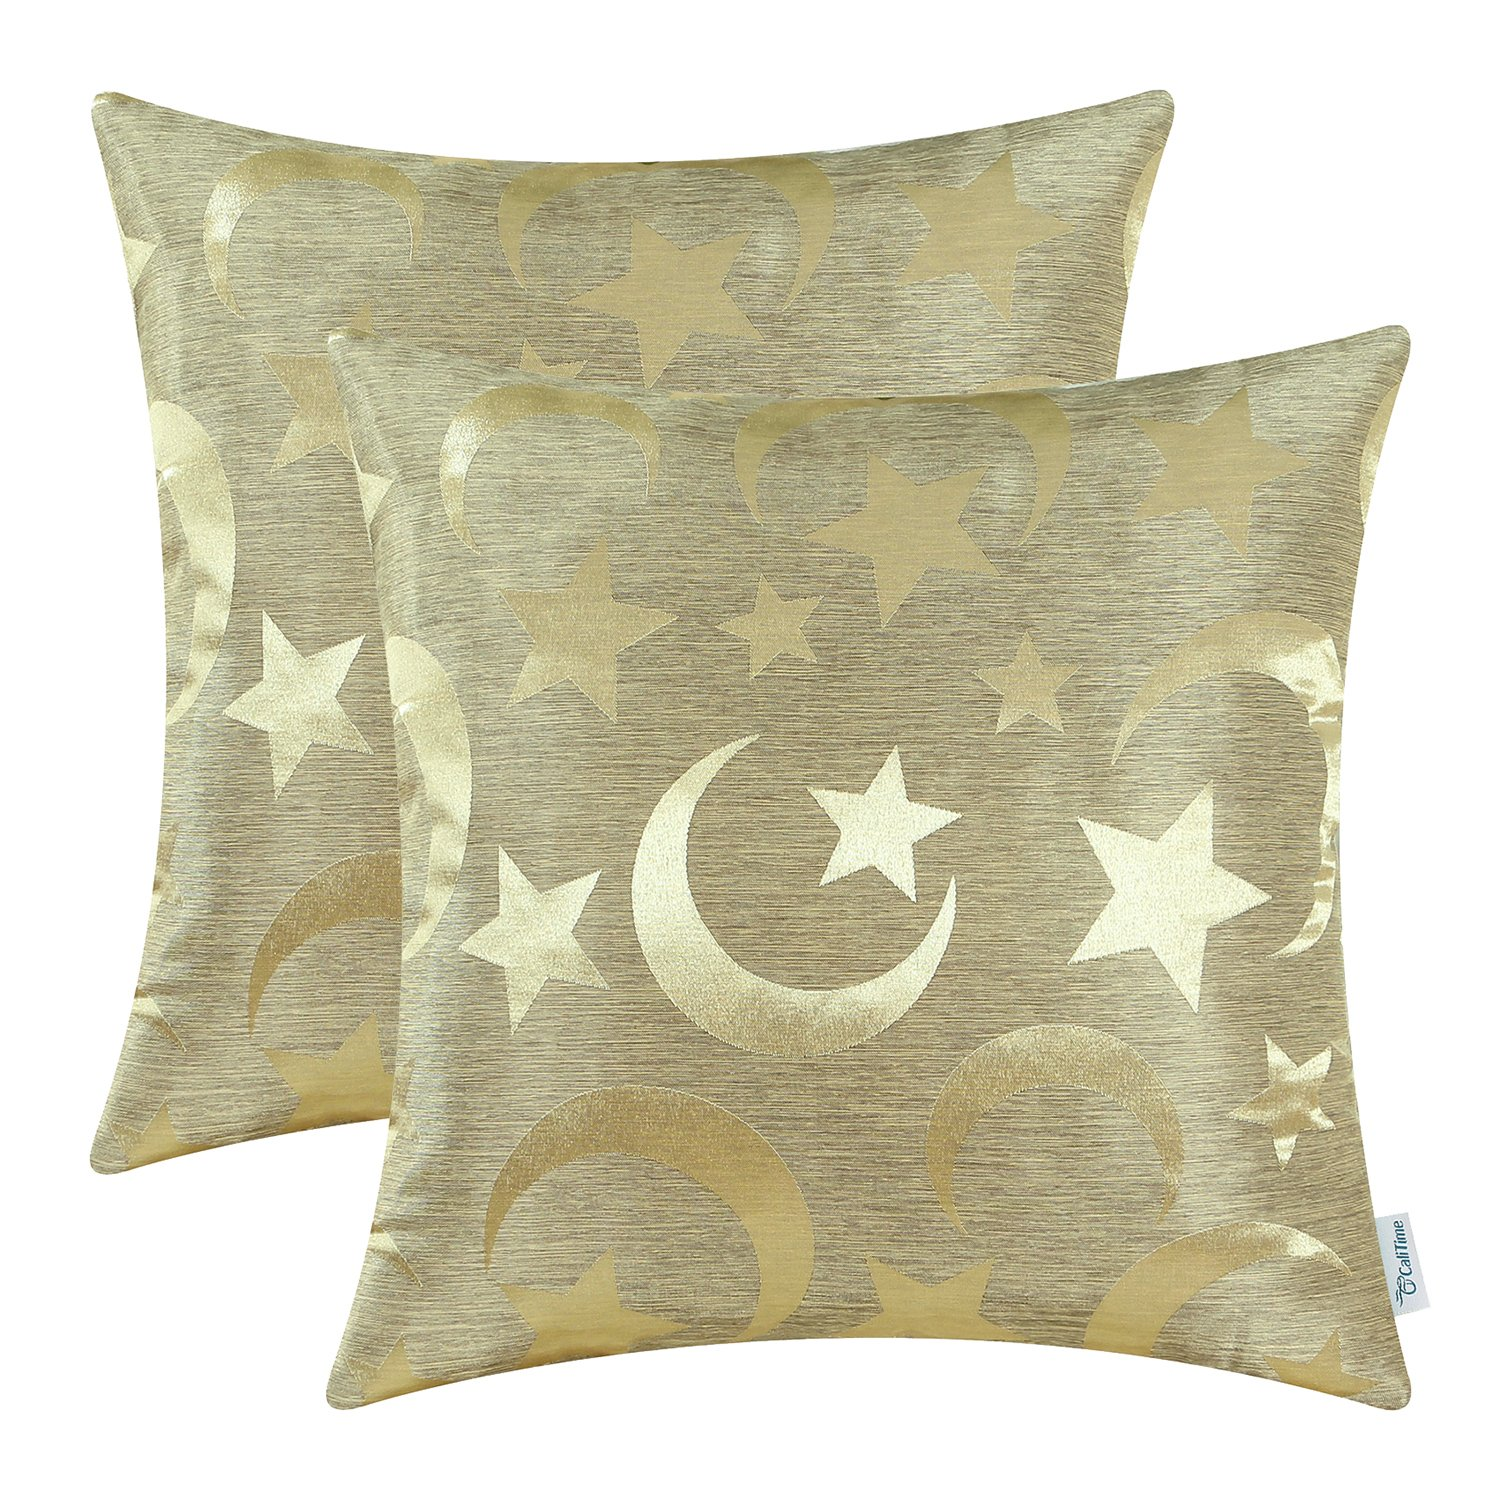 CaliTime Pack of 2 Throw Pillow Covers Cases for Couch Sofa Home Decor Modern Shining & Dull Contrast Stars & Moon 18 X 18 Inches Gold